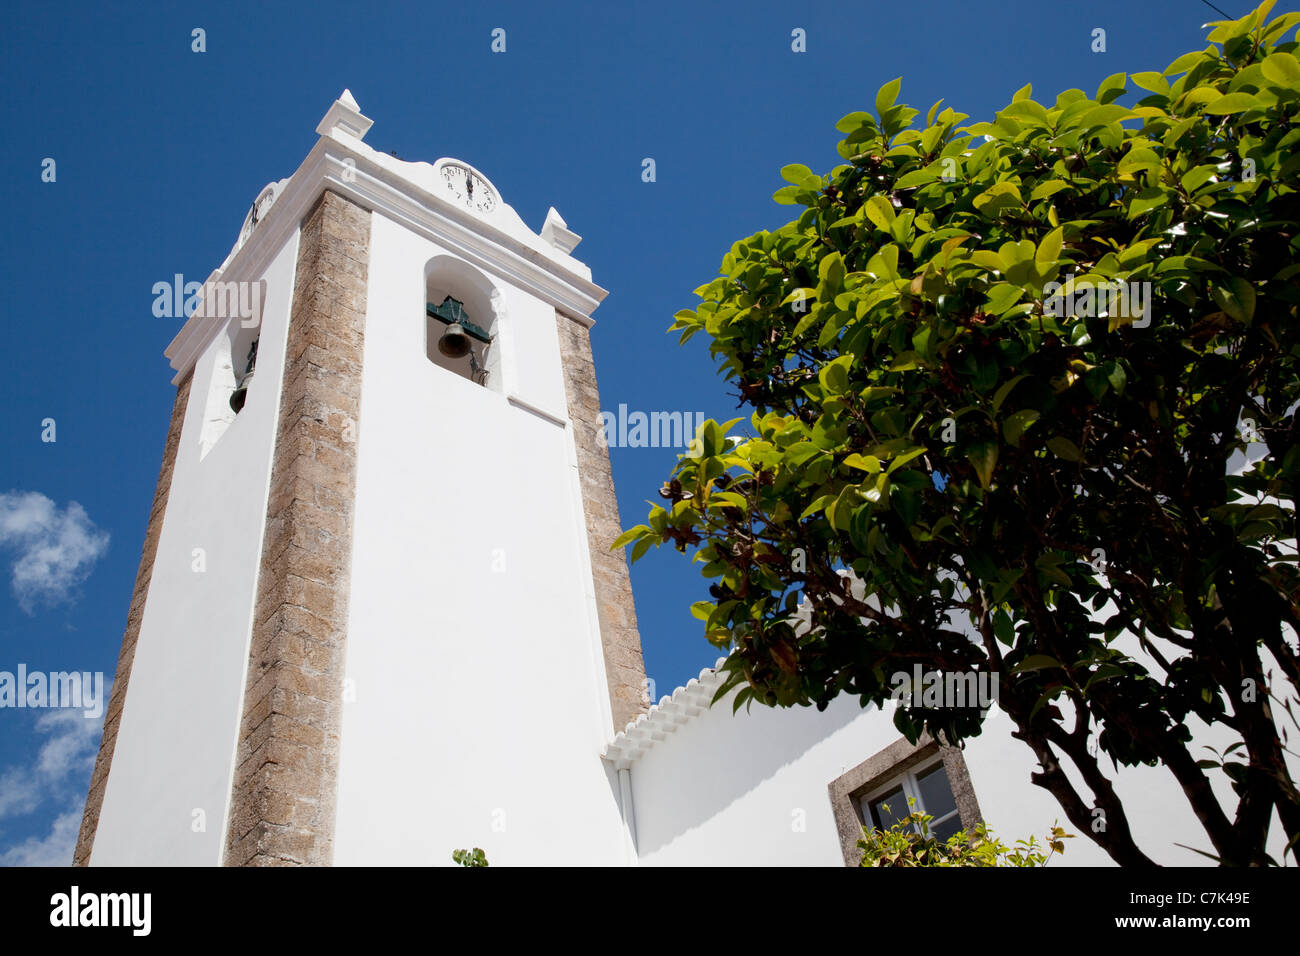 Portugal, Algarve, Monchique, Church Belltower - Stock Image